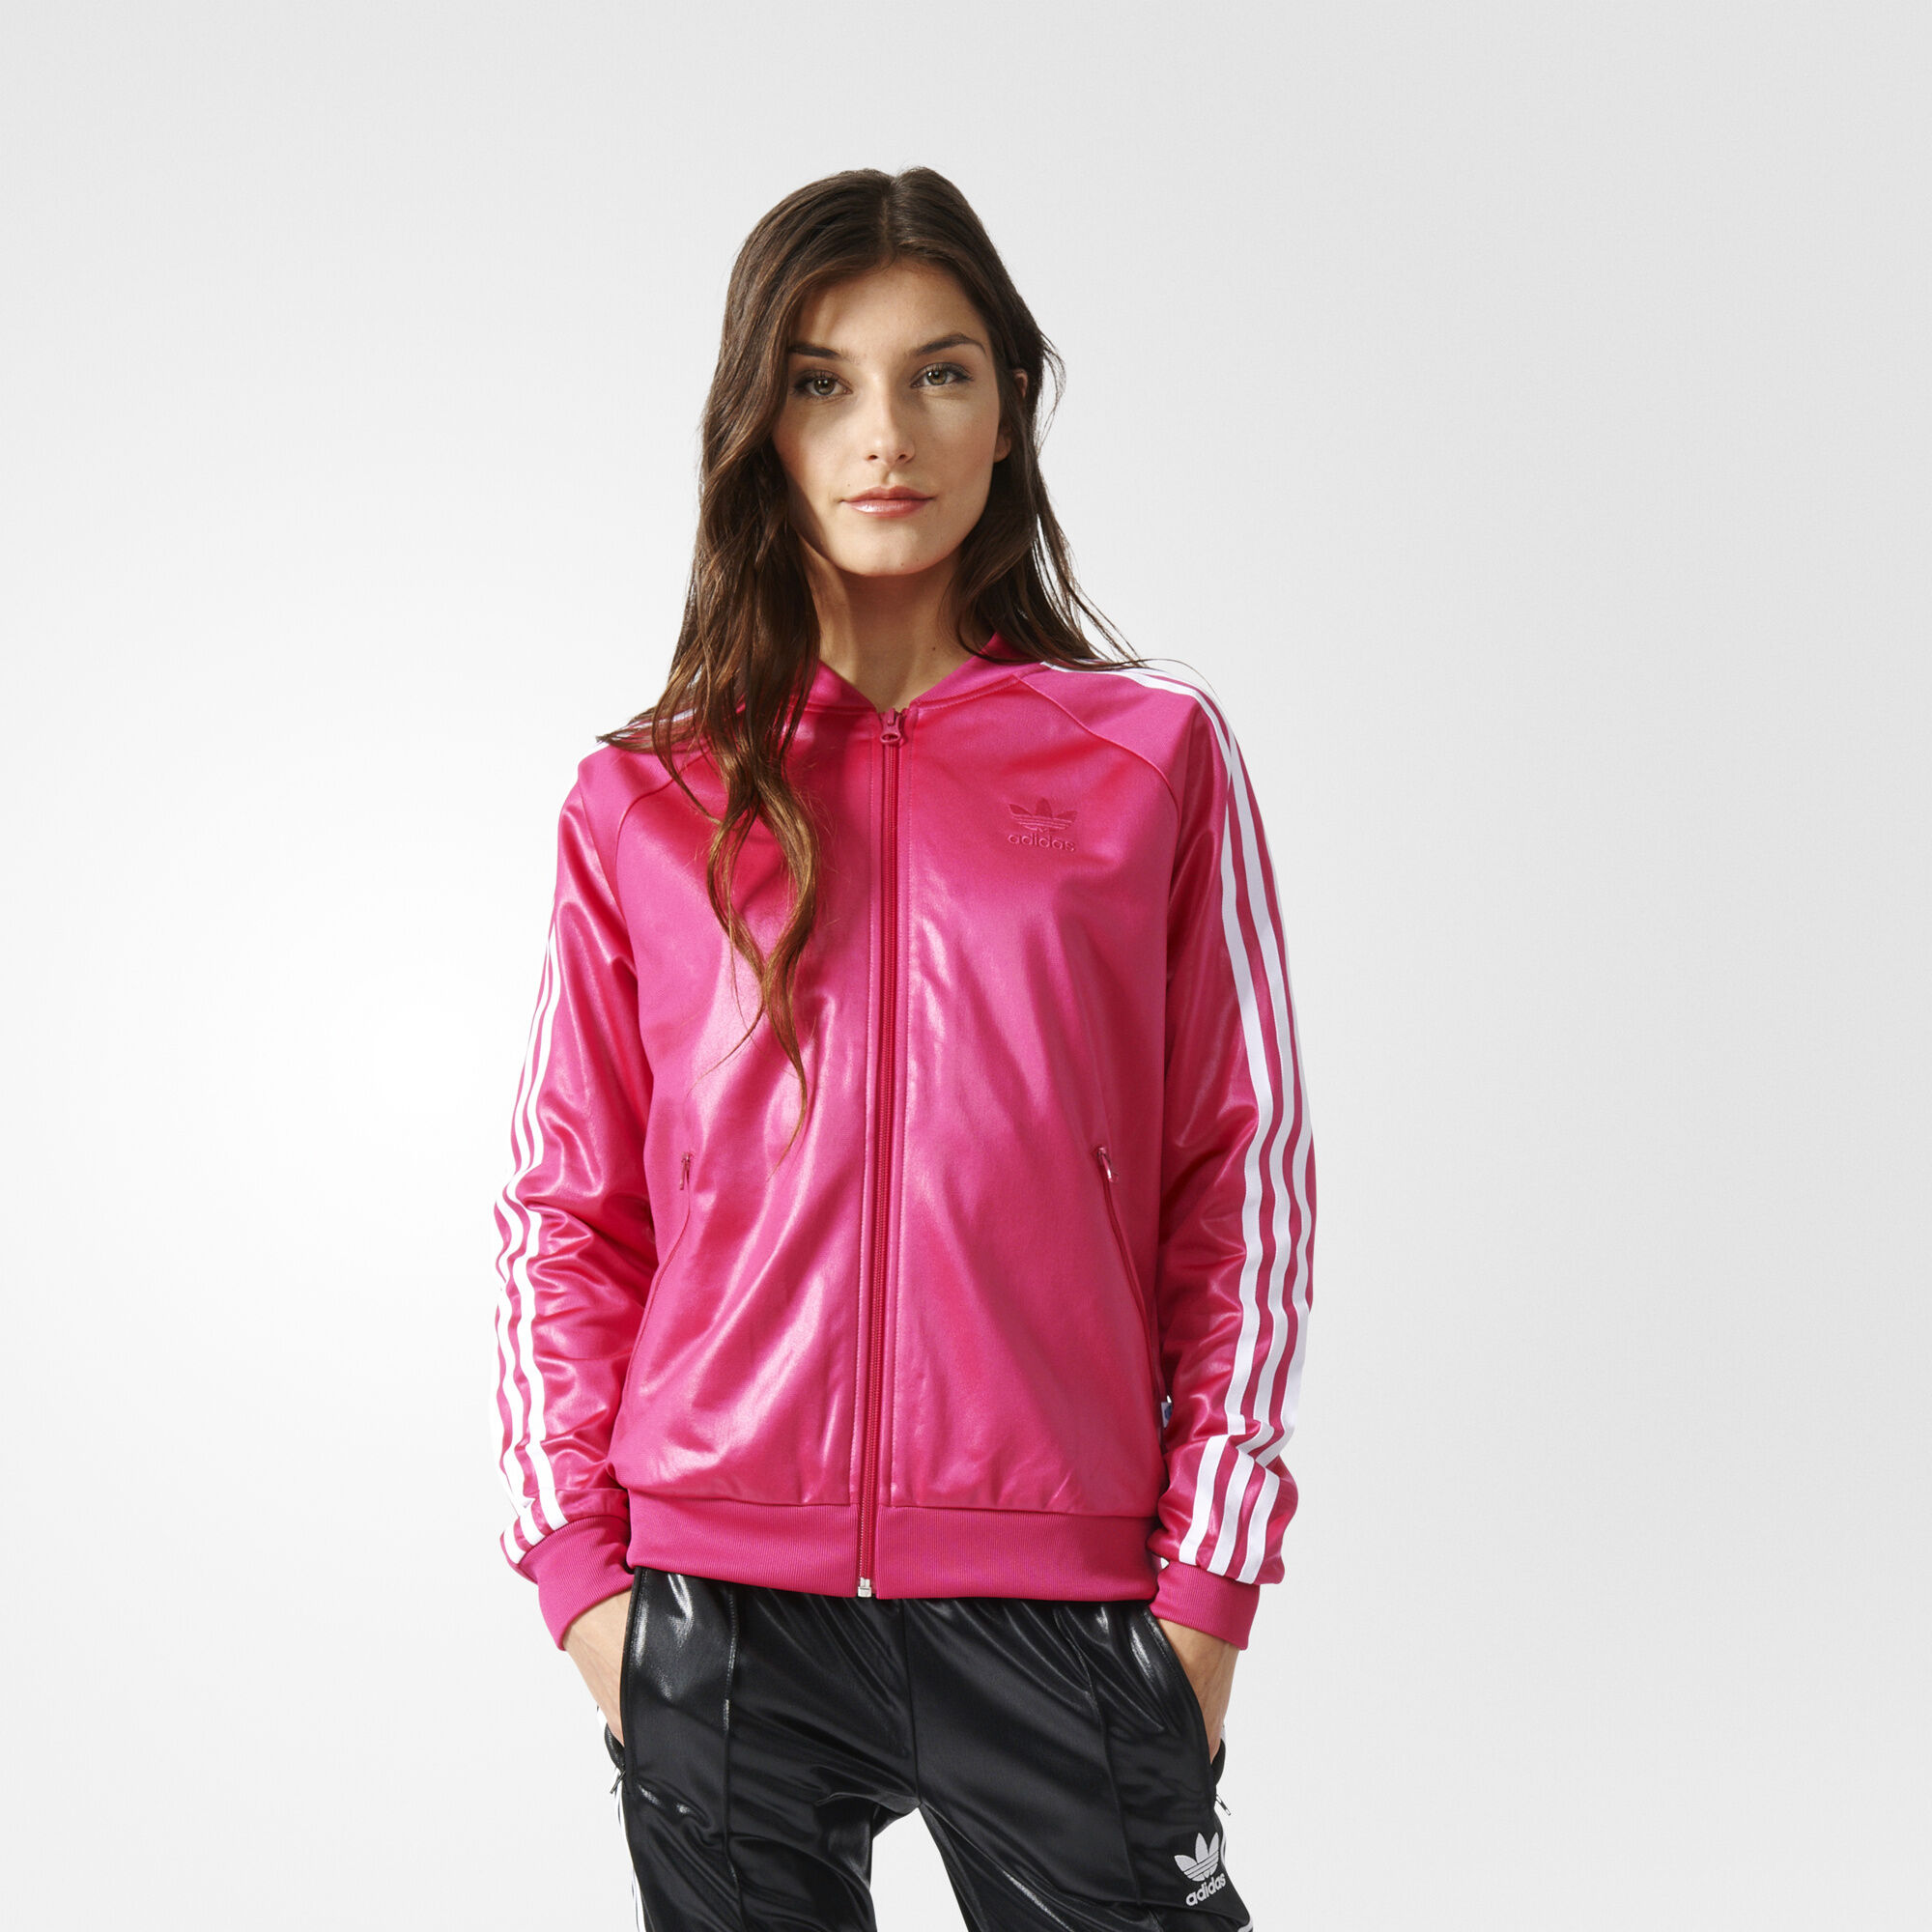 adidas sst track jacket pink adidas us. Black Bedroom Furniture Sets. Home Design Ideas